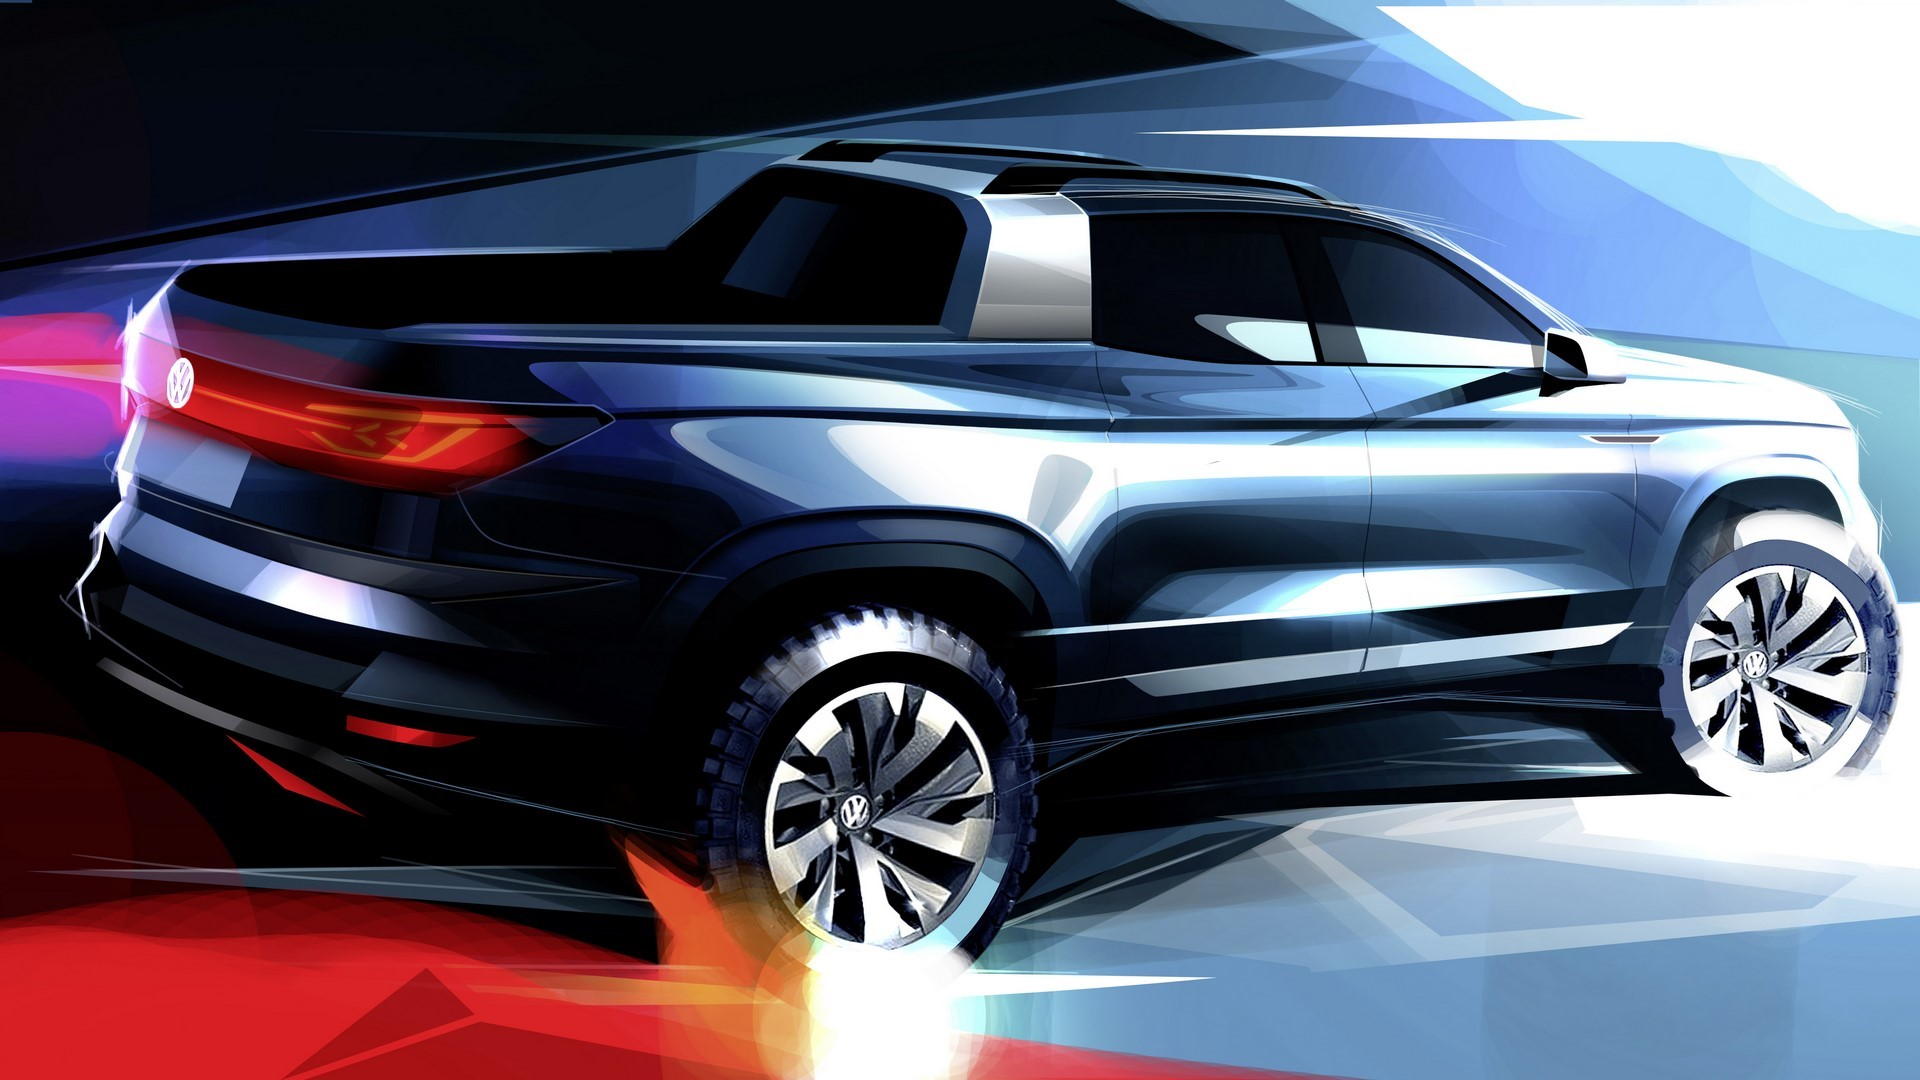 Premiere in Brazil: Volkswagen presents its pioneering pickup concept vehicle in São Paulo